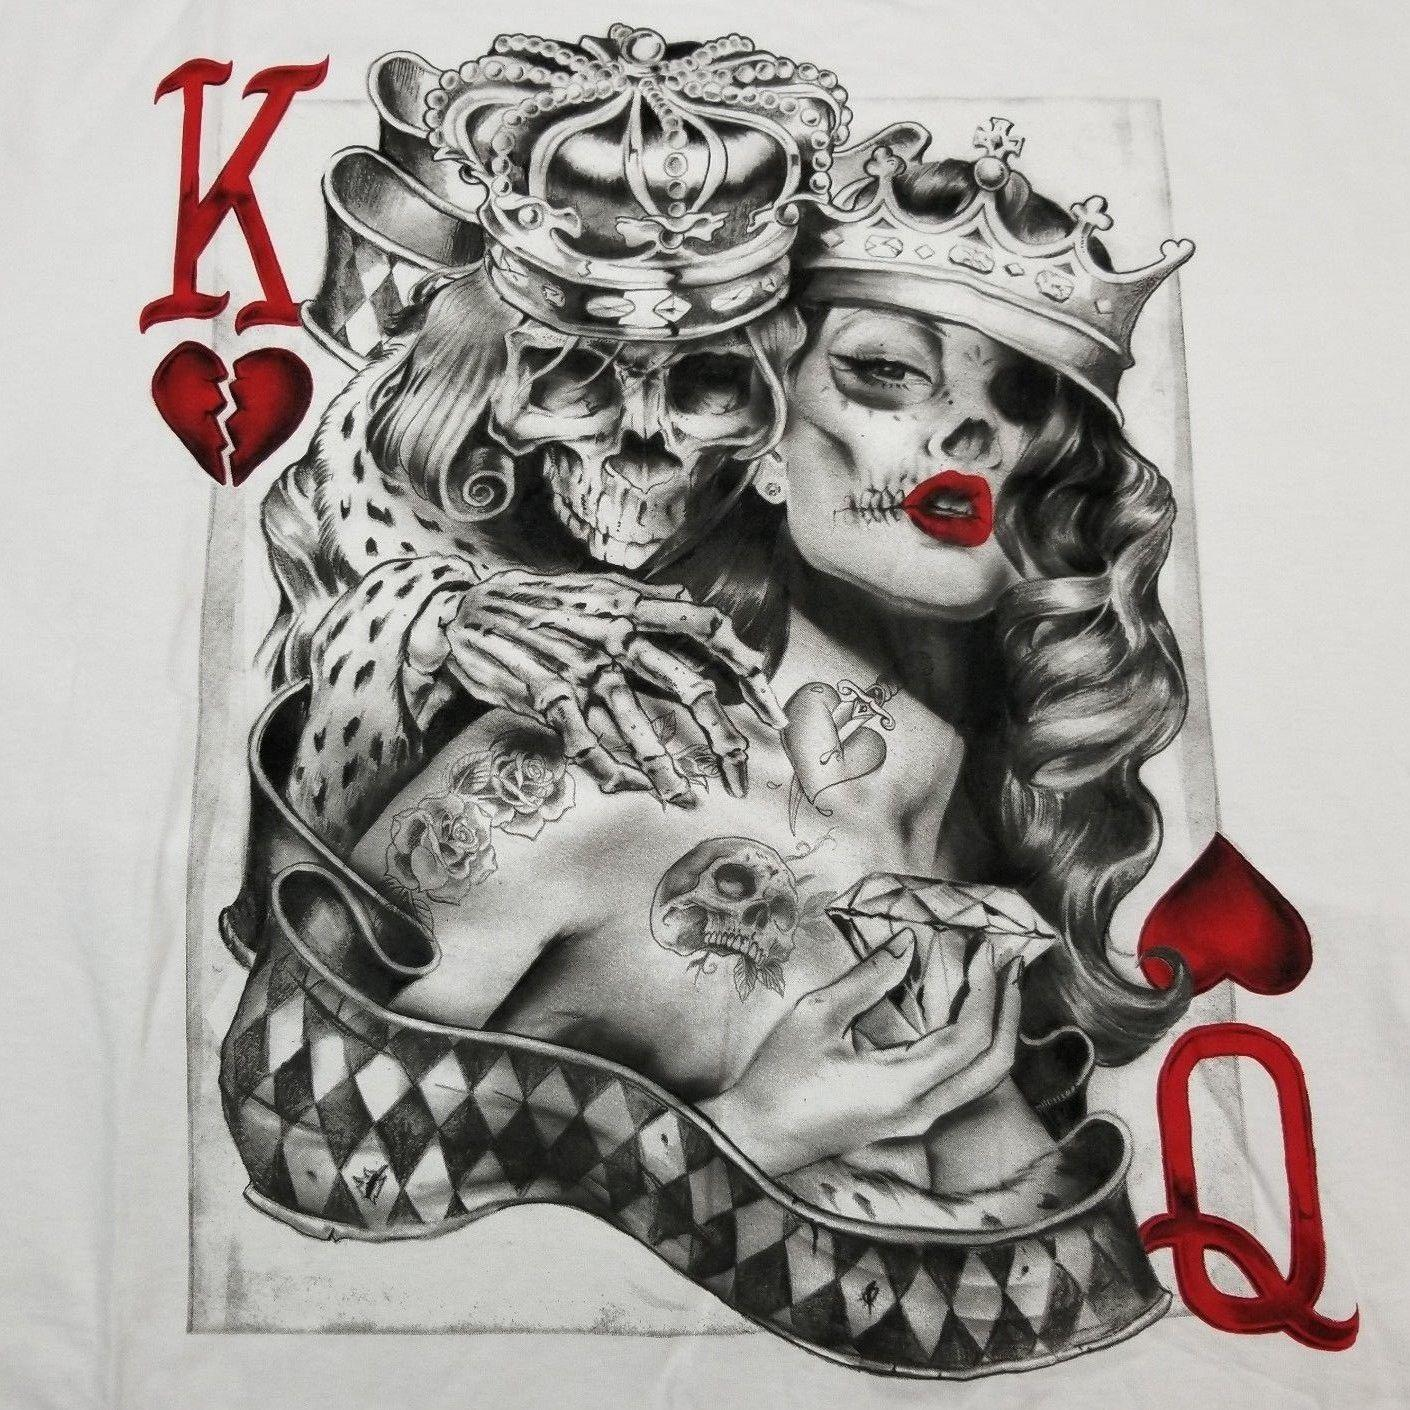 a10179308435d Men's King & Queen Of Hearts T-Shirt S-3XL Tattoo Sugar Skull Poker Playing  Card